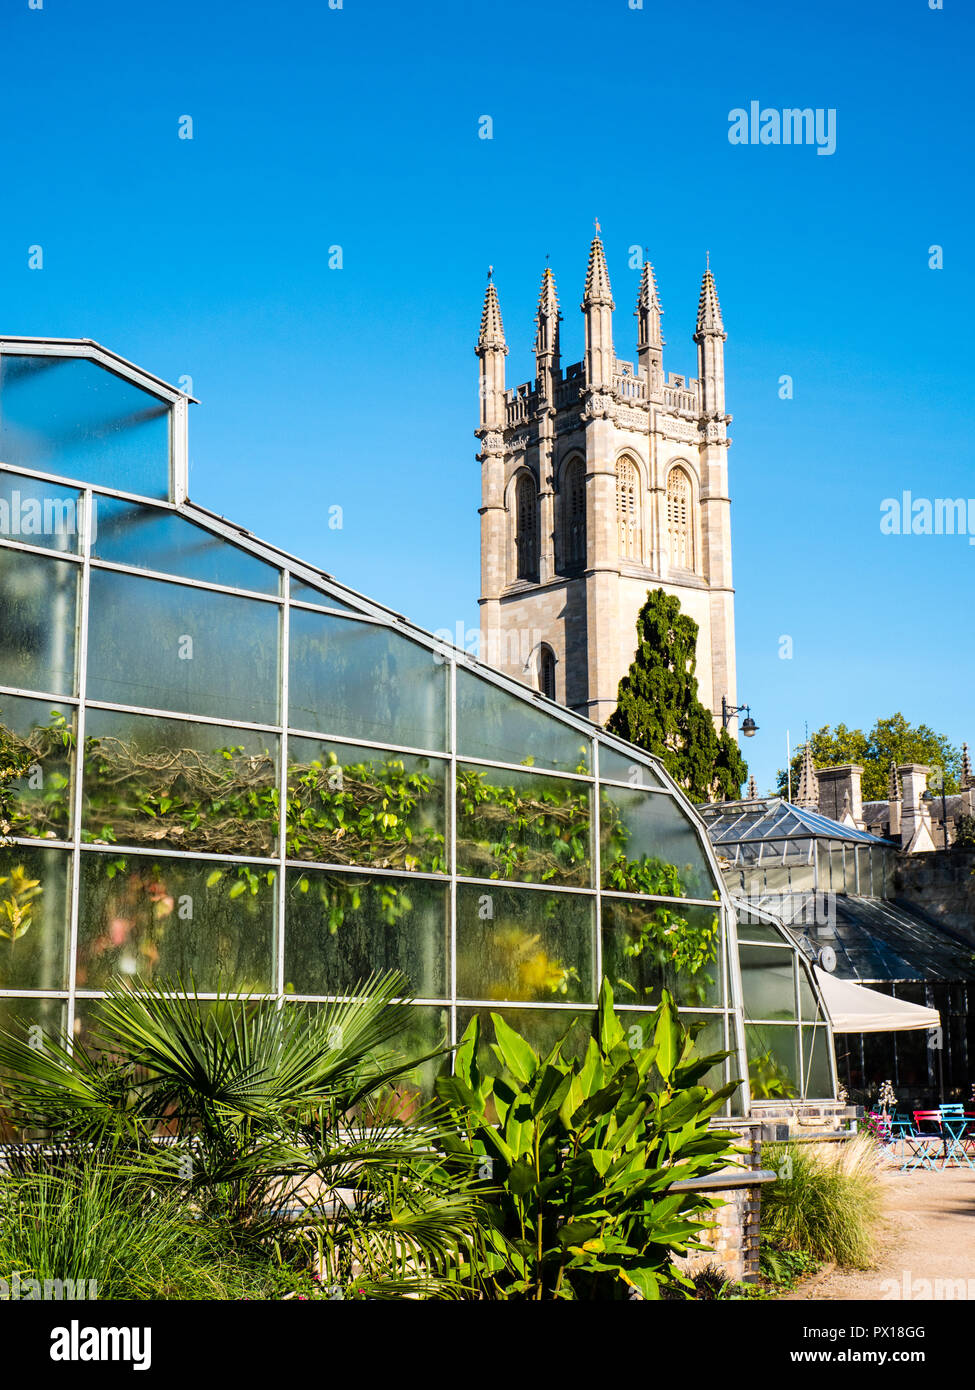 greenhouse-and-magdalen-tower-university